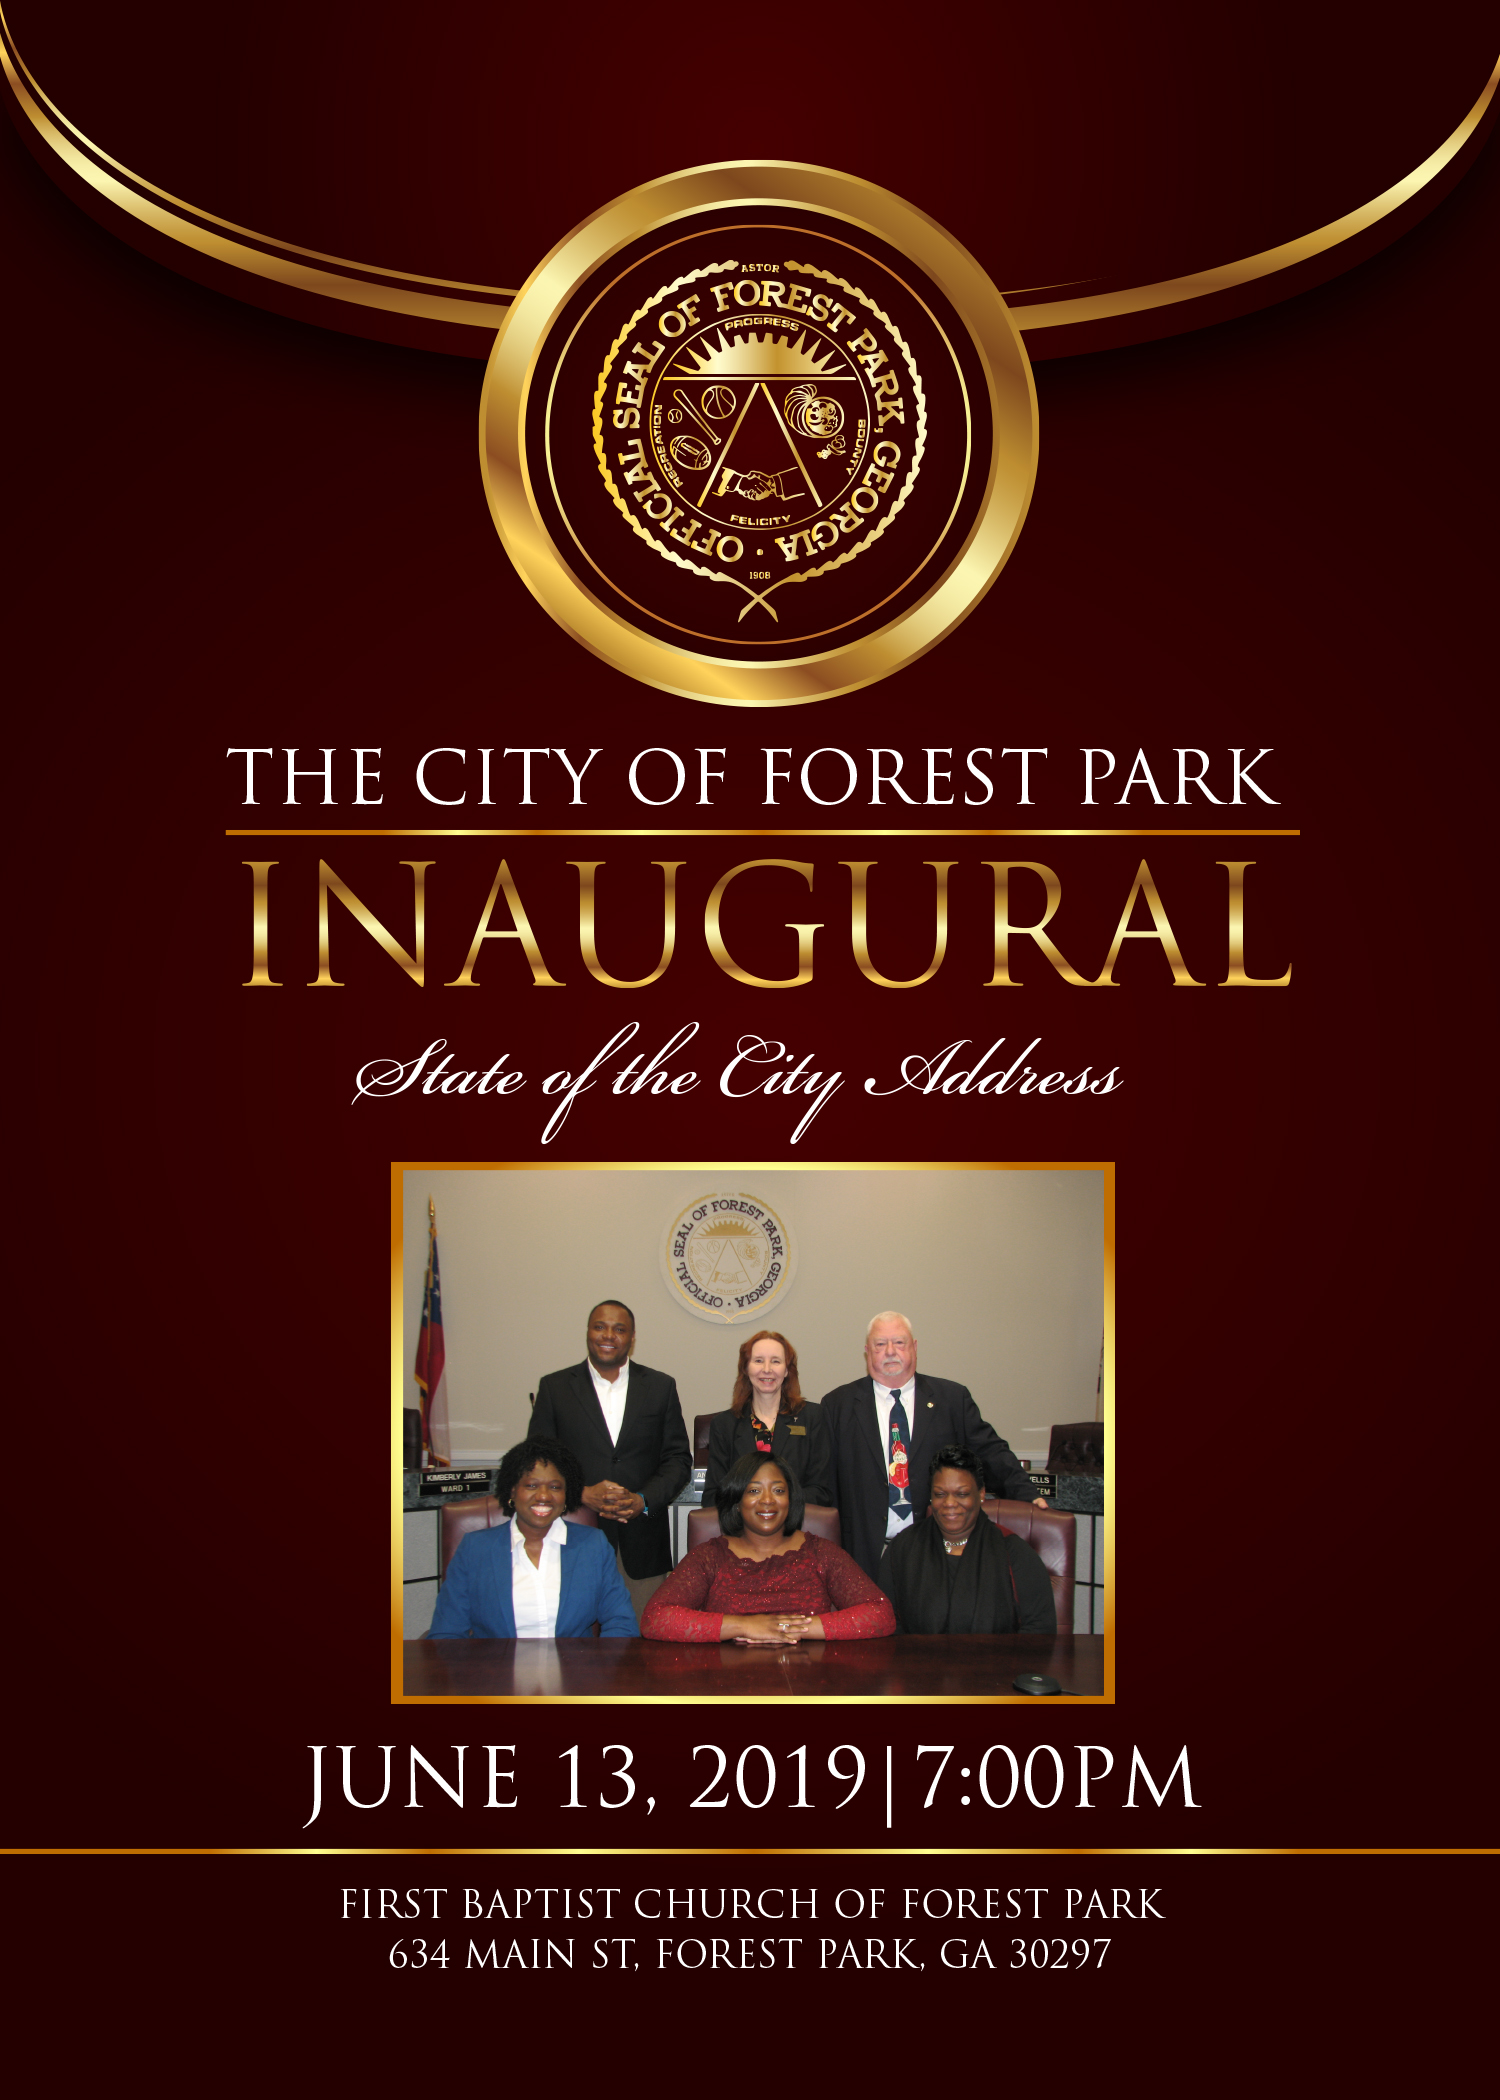 Forest Park State of the City